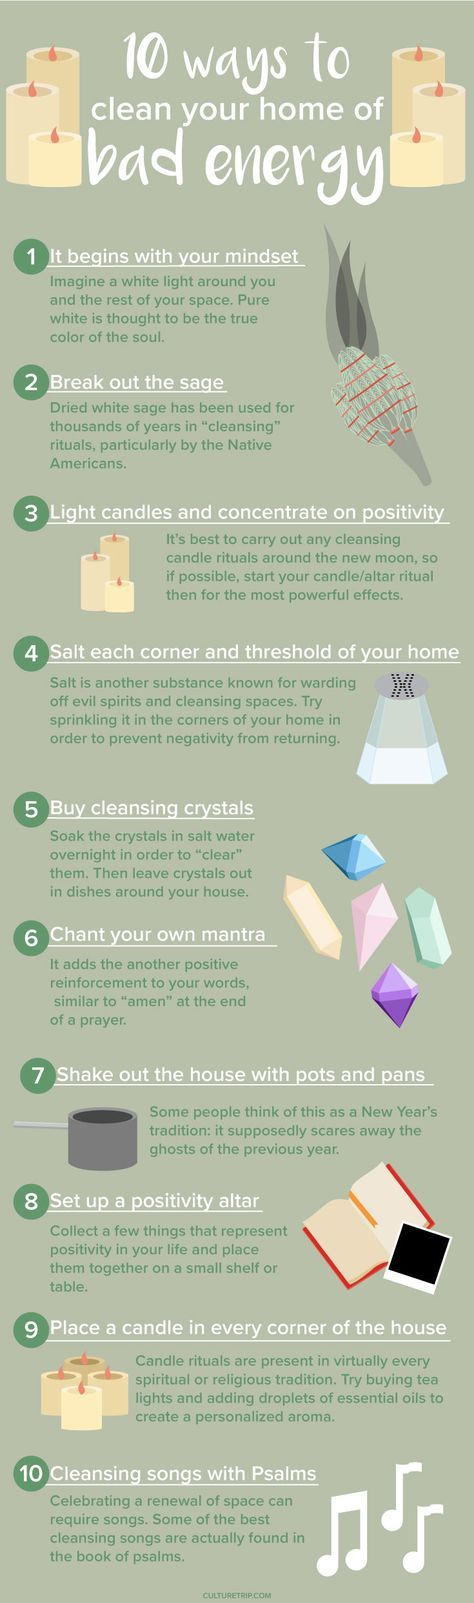 32+ How to reduce negativity at home ideas